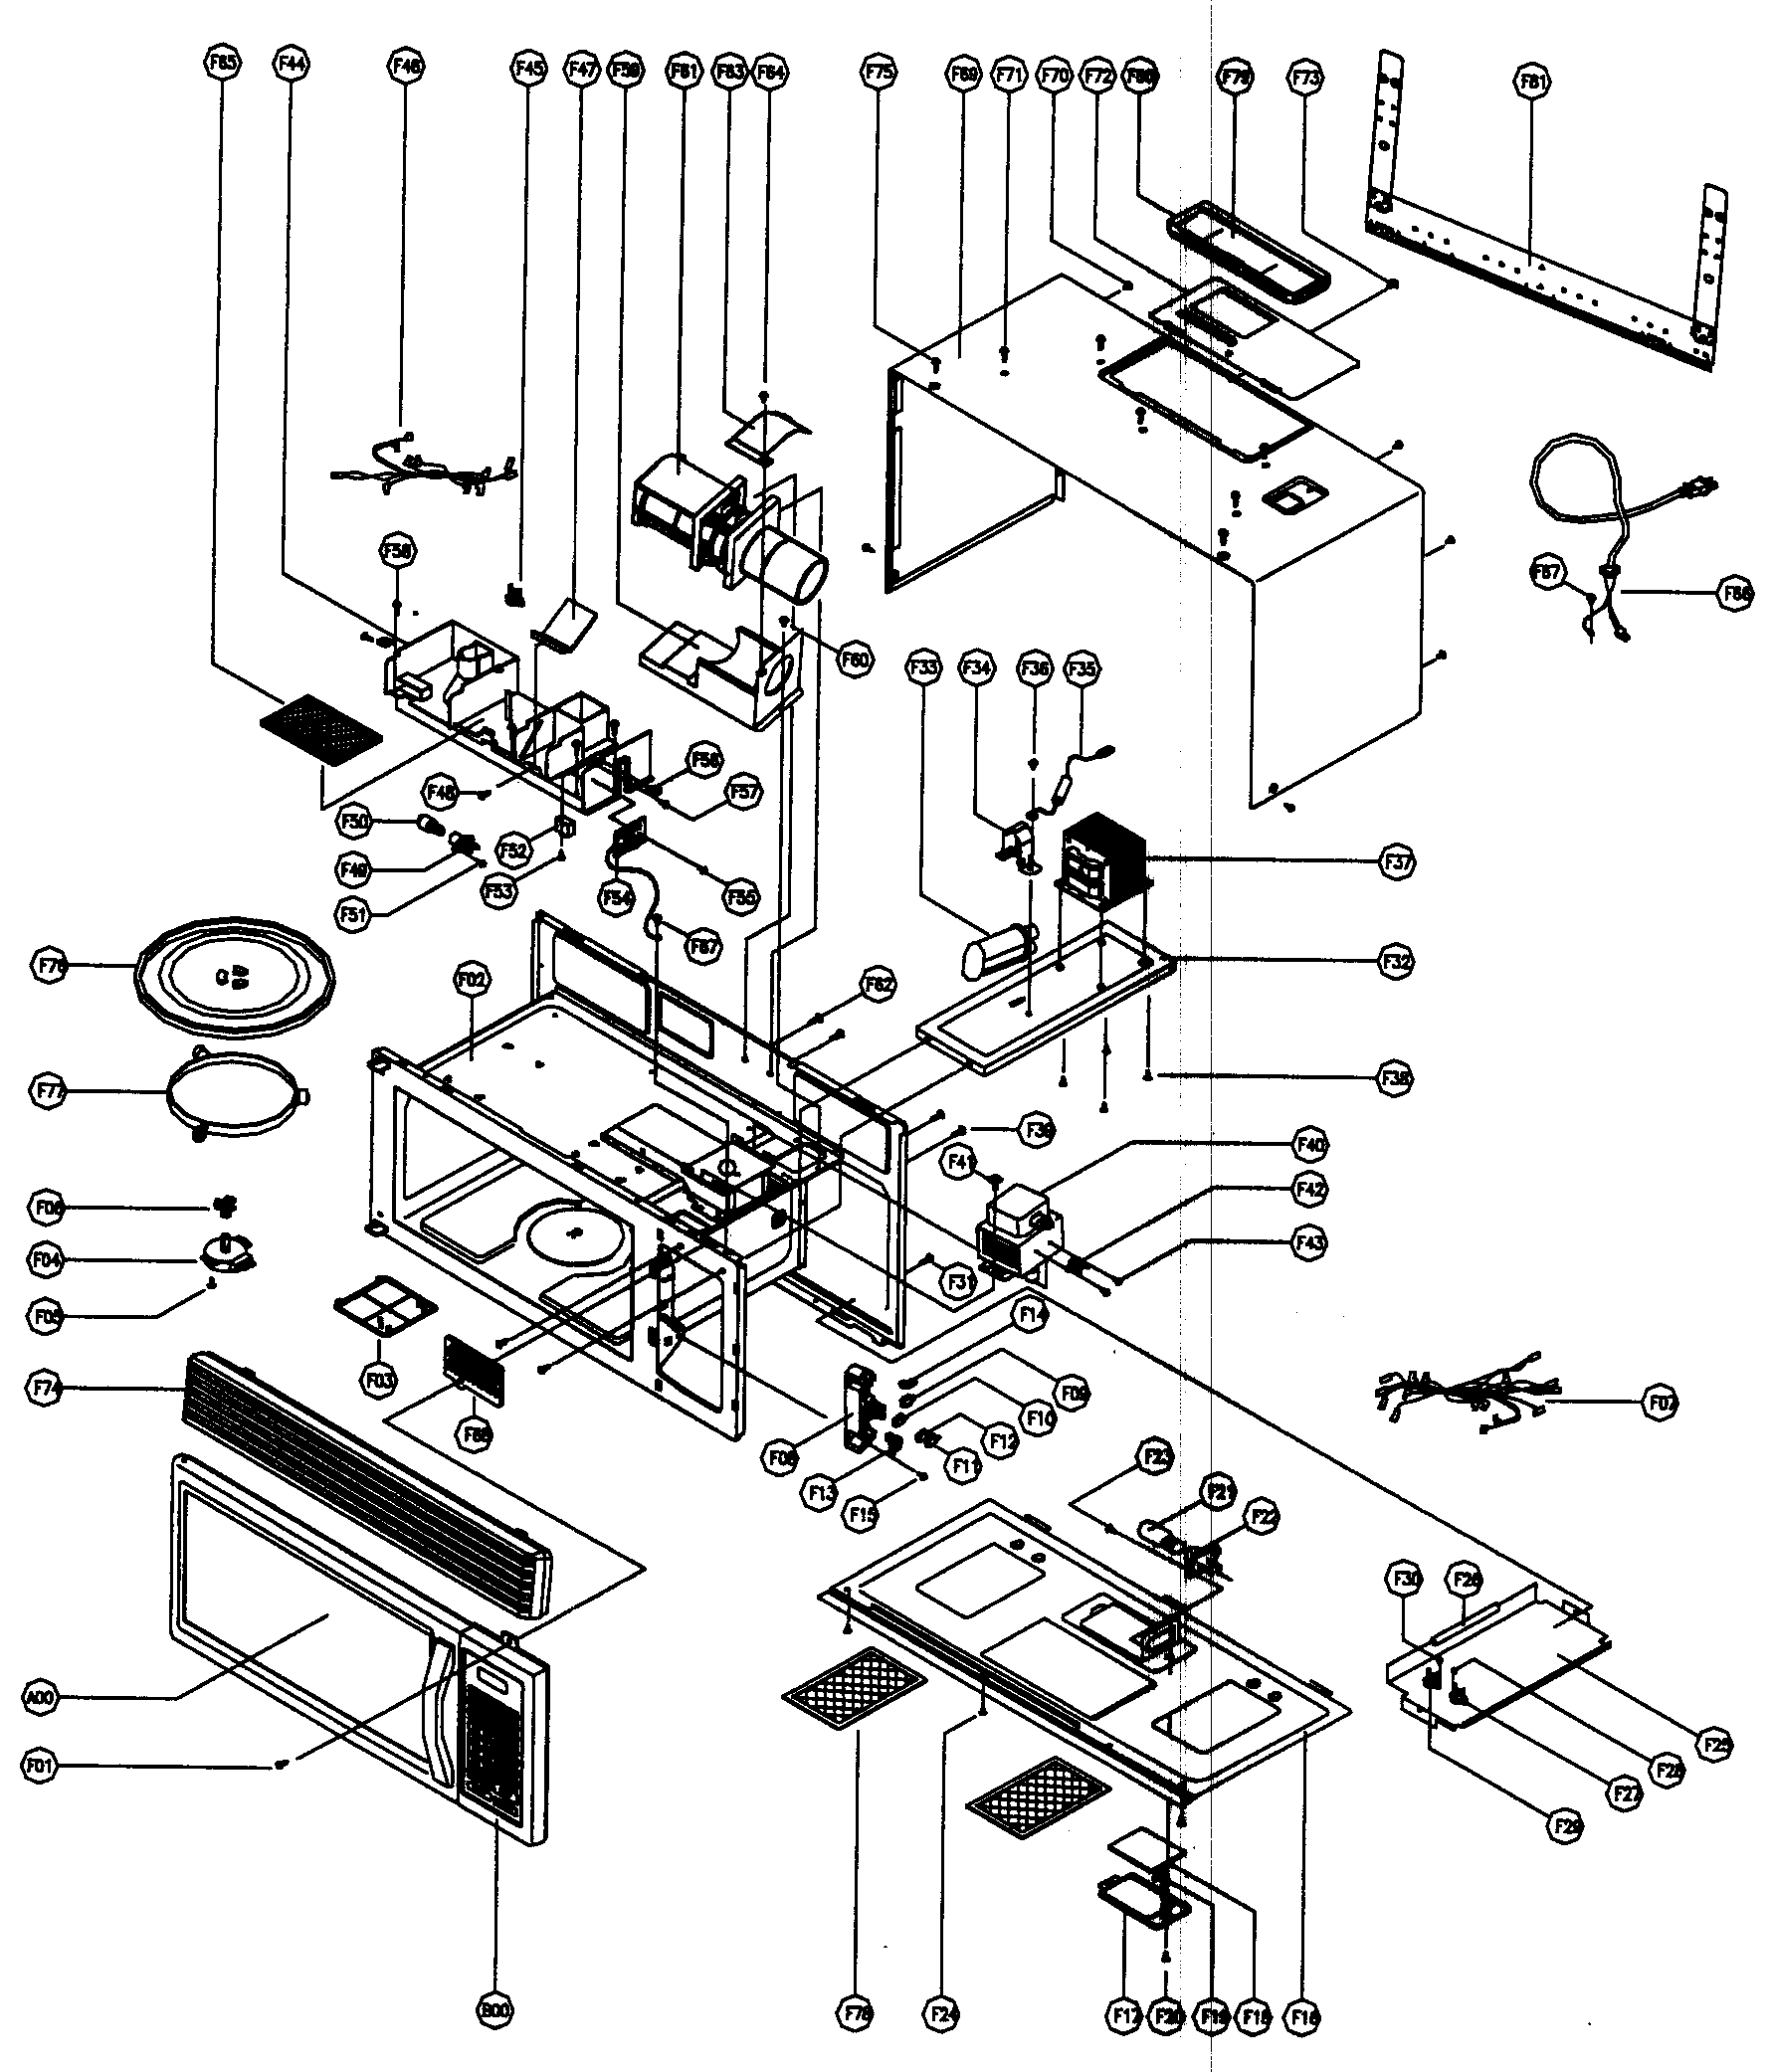 Lovely microwave schematic contemporary wiring diagram ideas